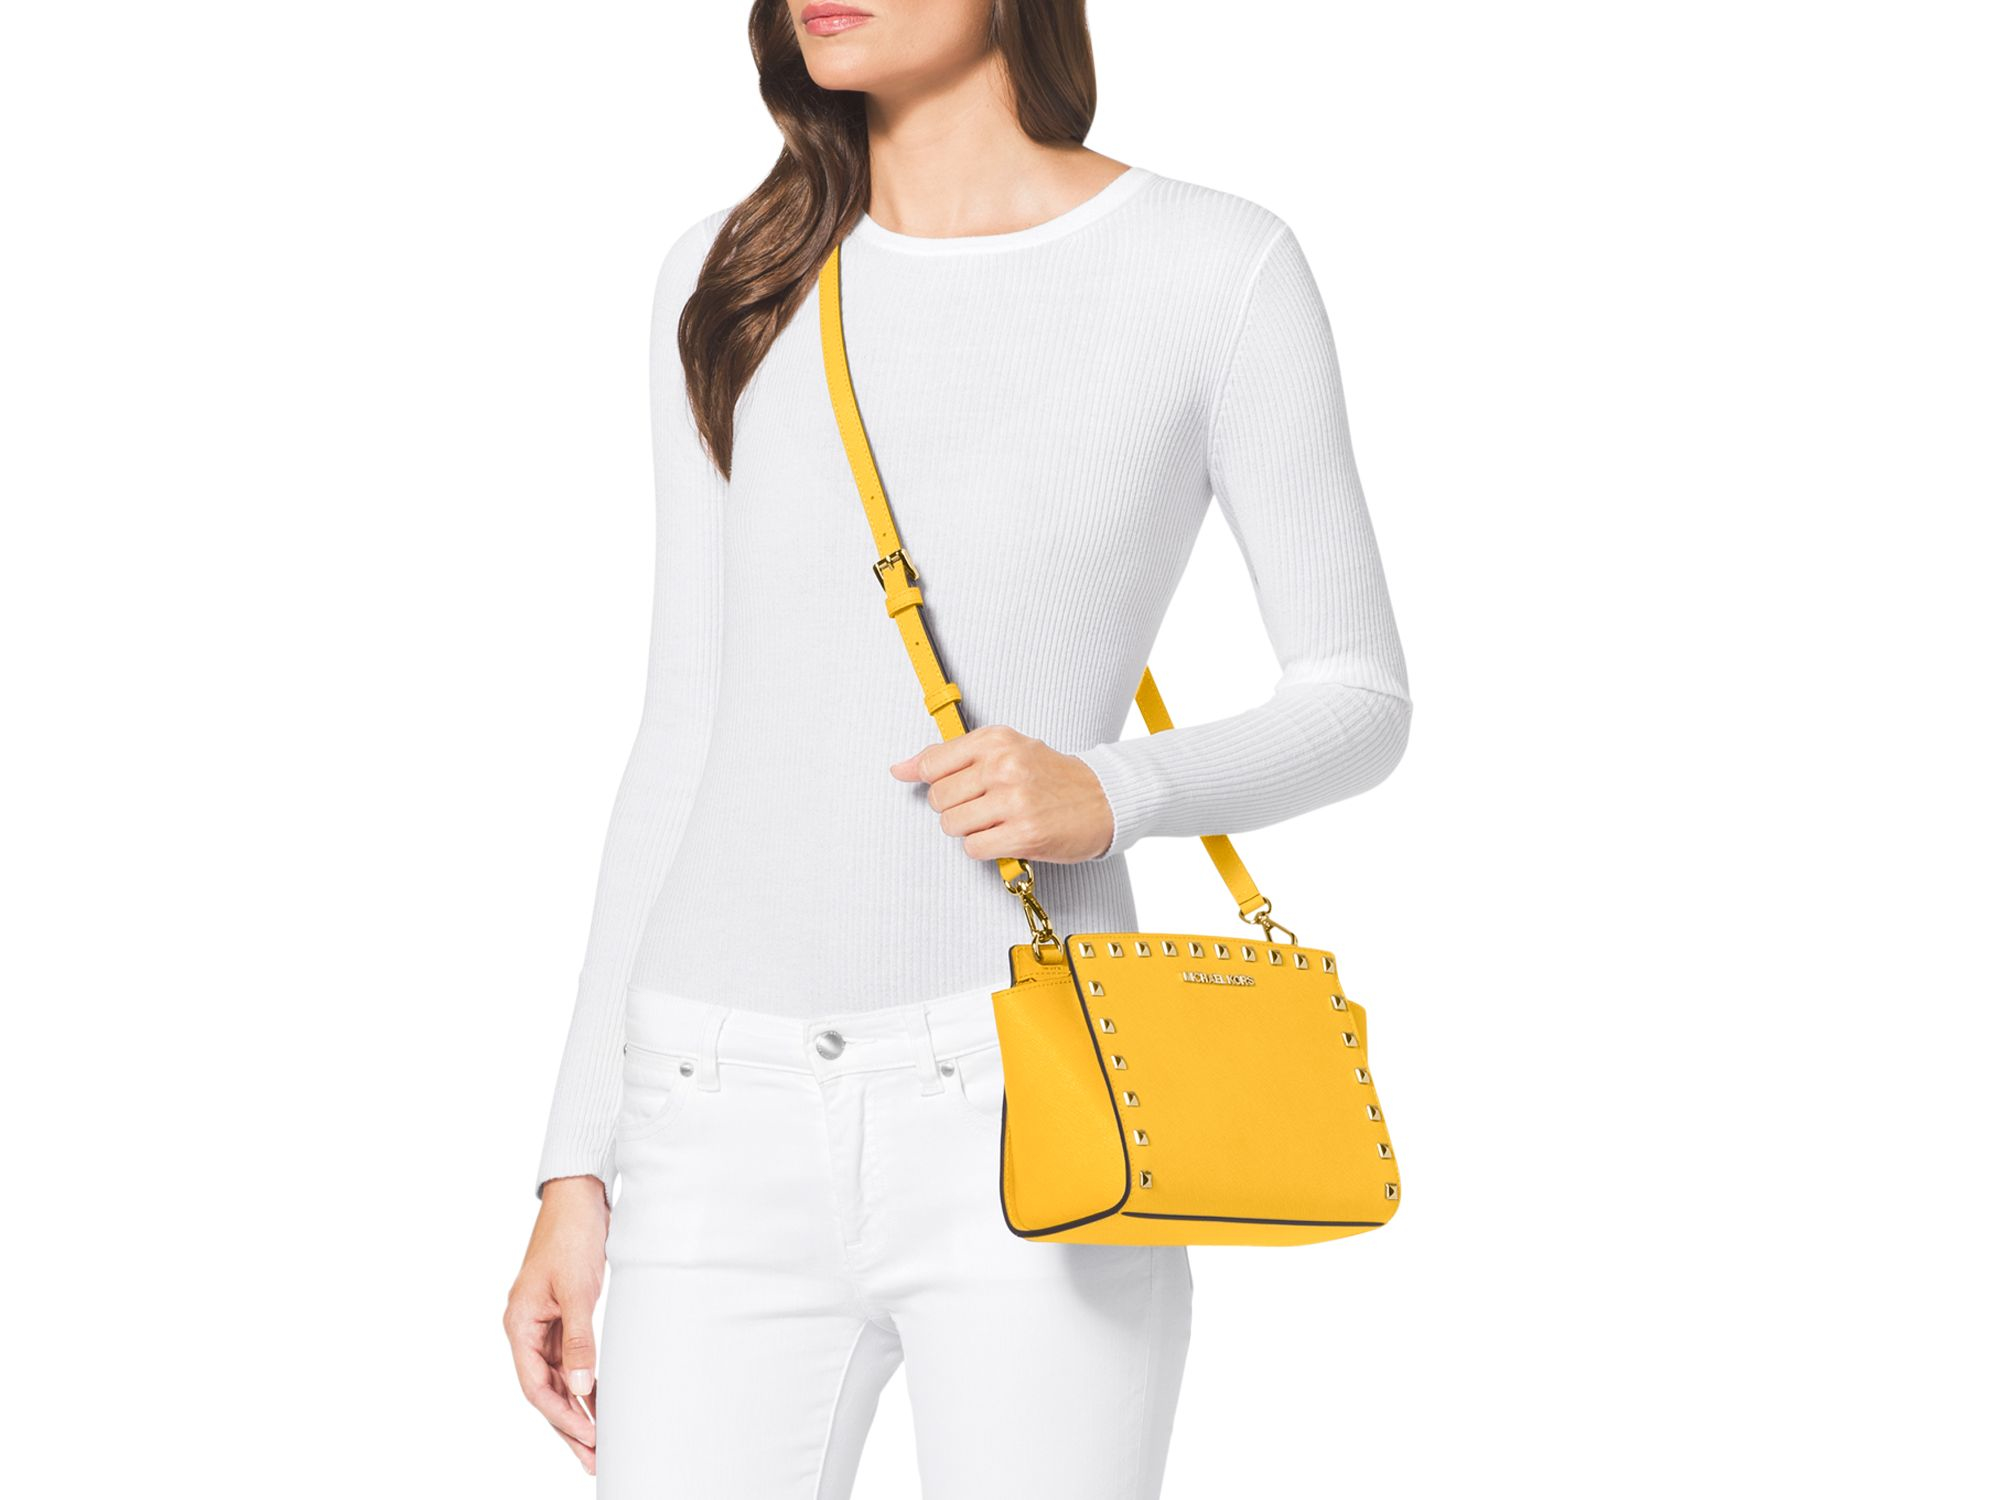 5892691f8d76 Gallery. Previously sold at: Bloomingdale's, Macy's · Women's Michael By Michael  Kors Selma